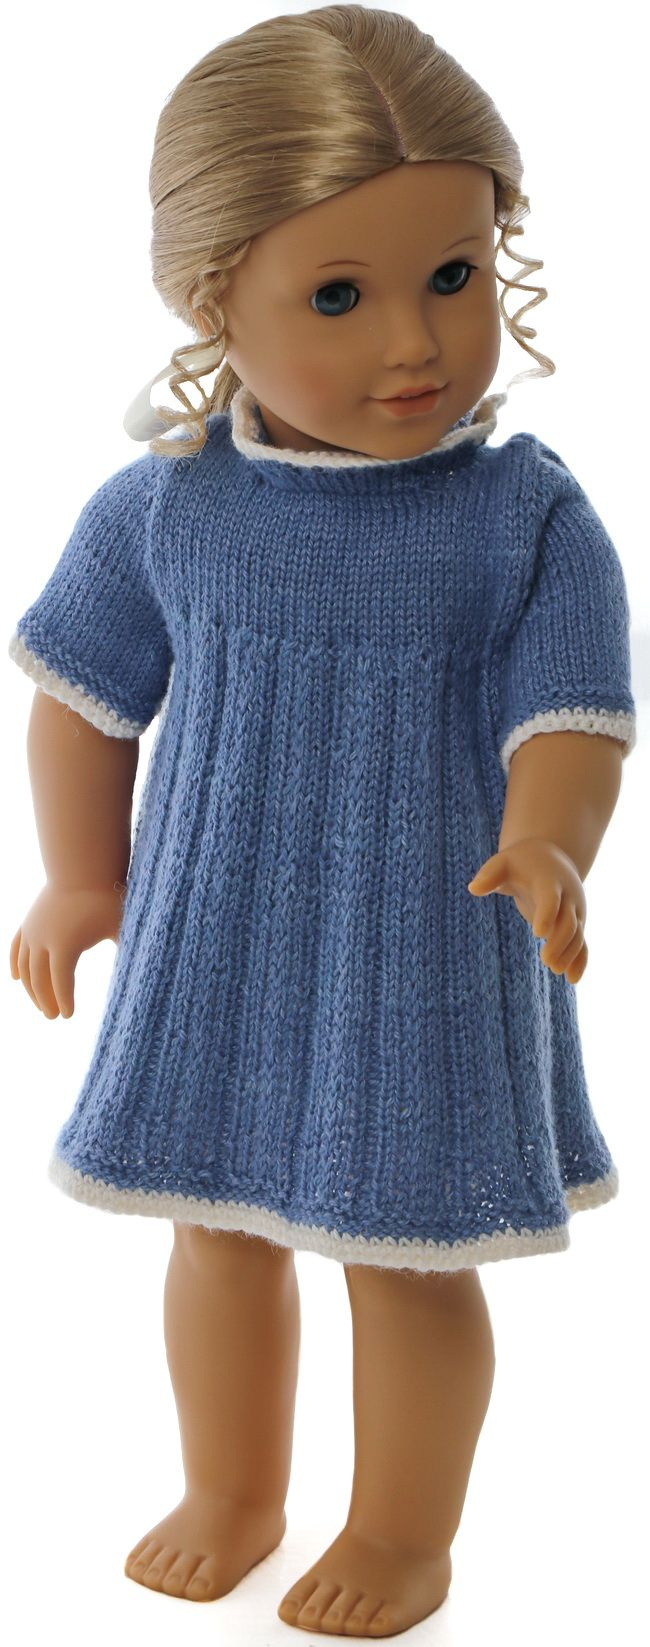 Dolls clothes knitting patterns to download   Maalfrid-Gausel ...